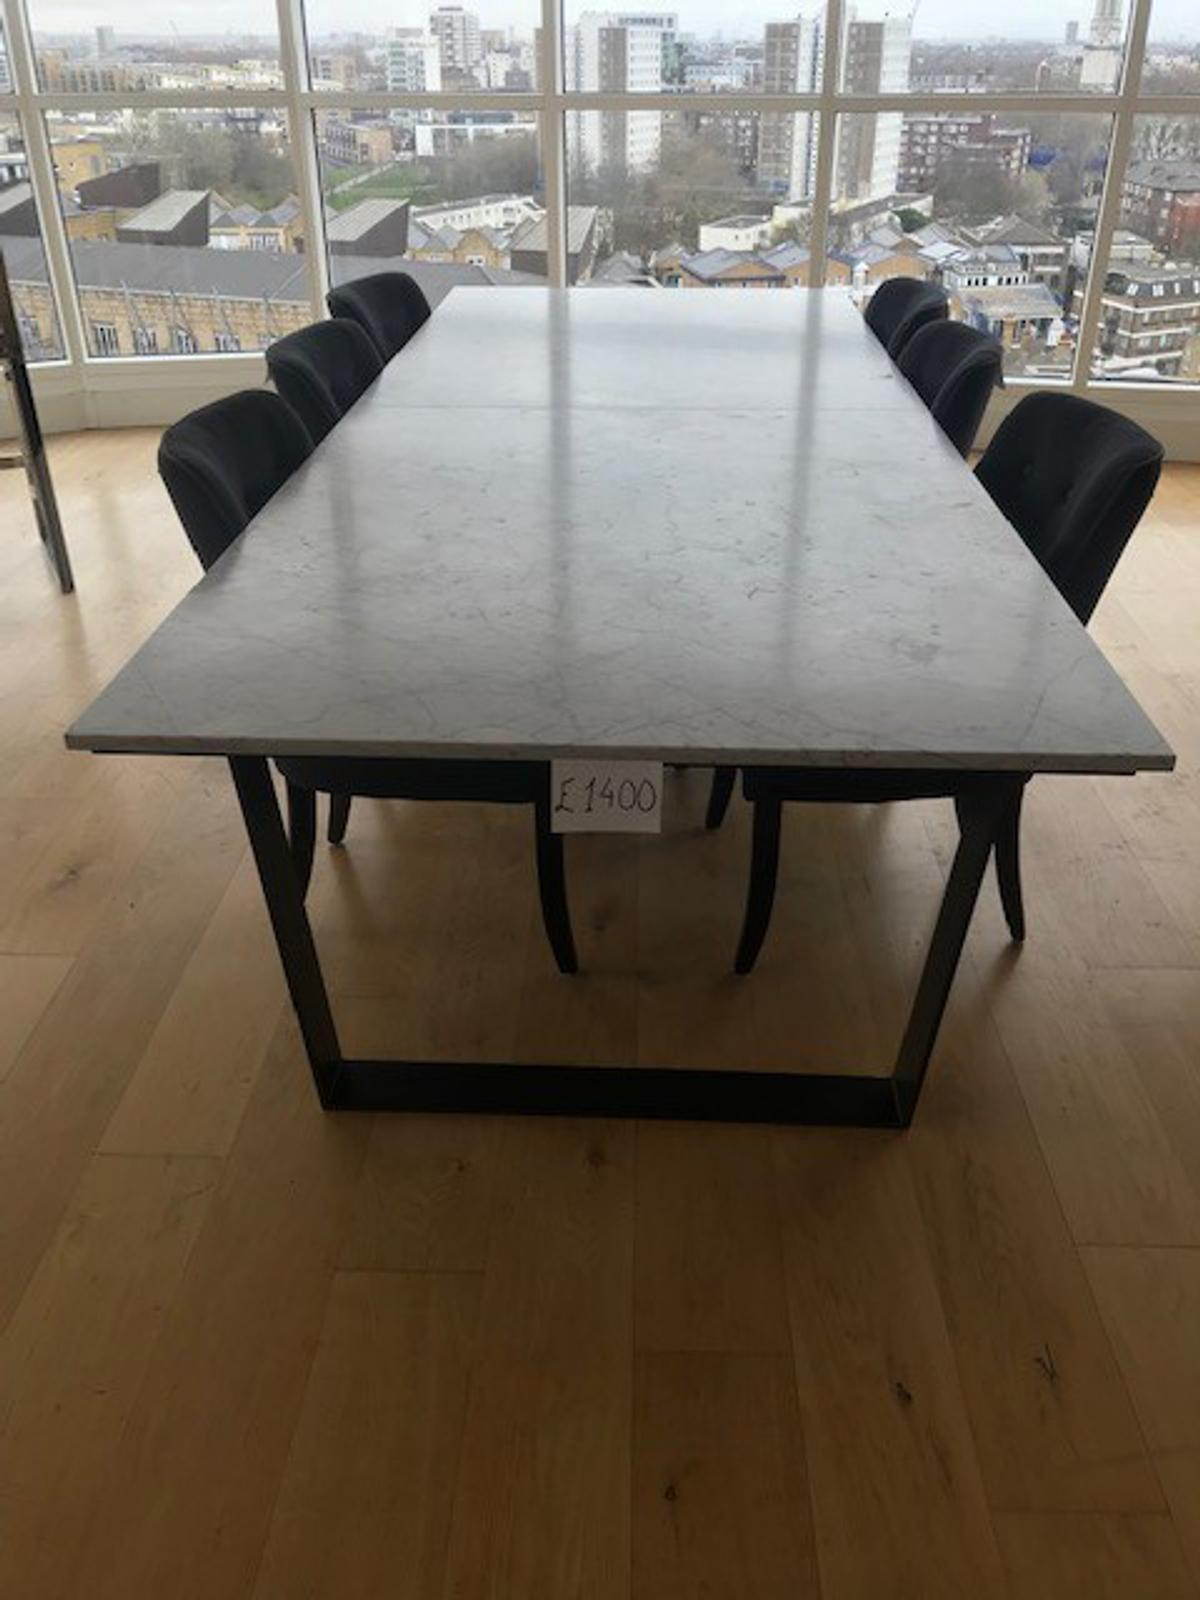 - Granite Top Dining Table And 6 Chairs In E14 London Borough Of